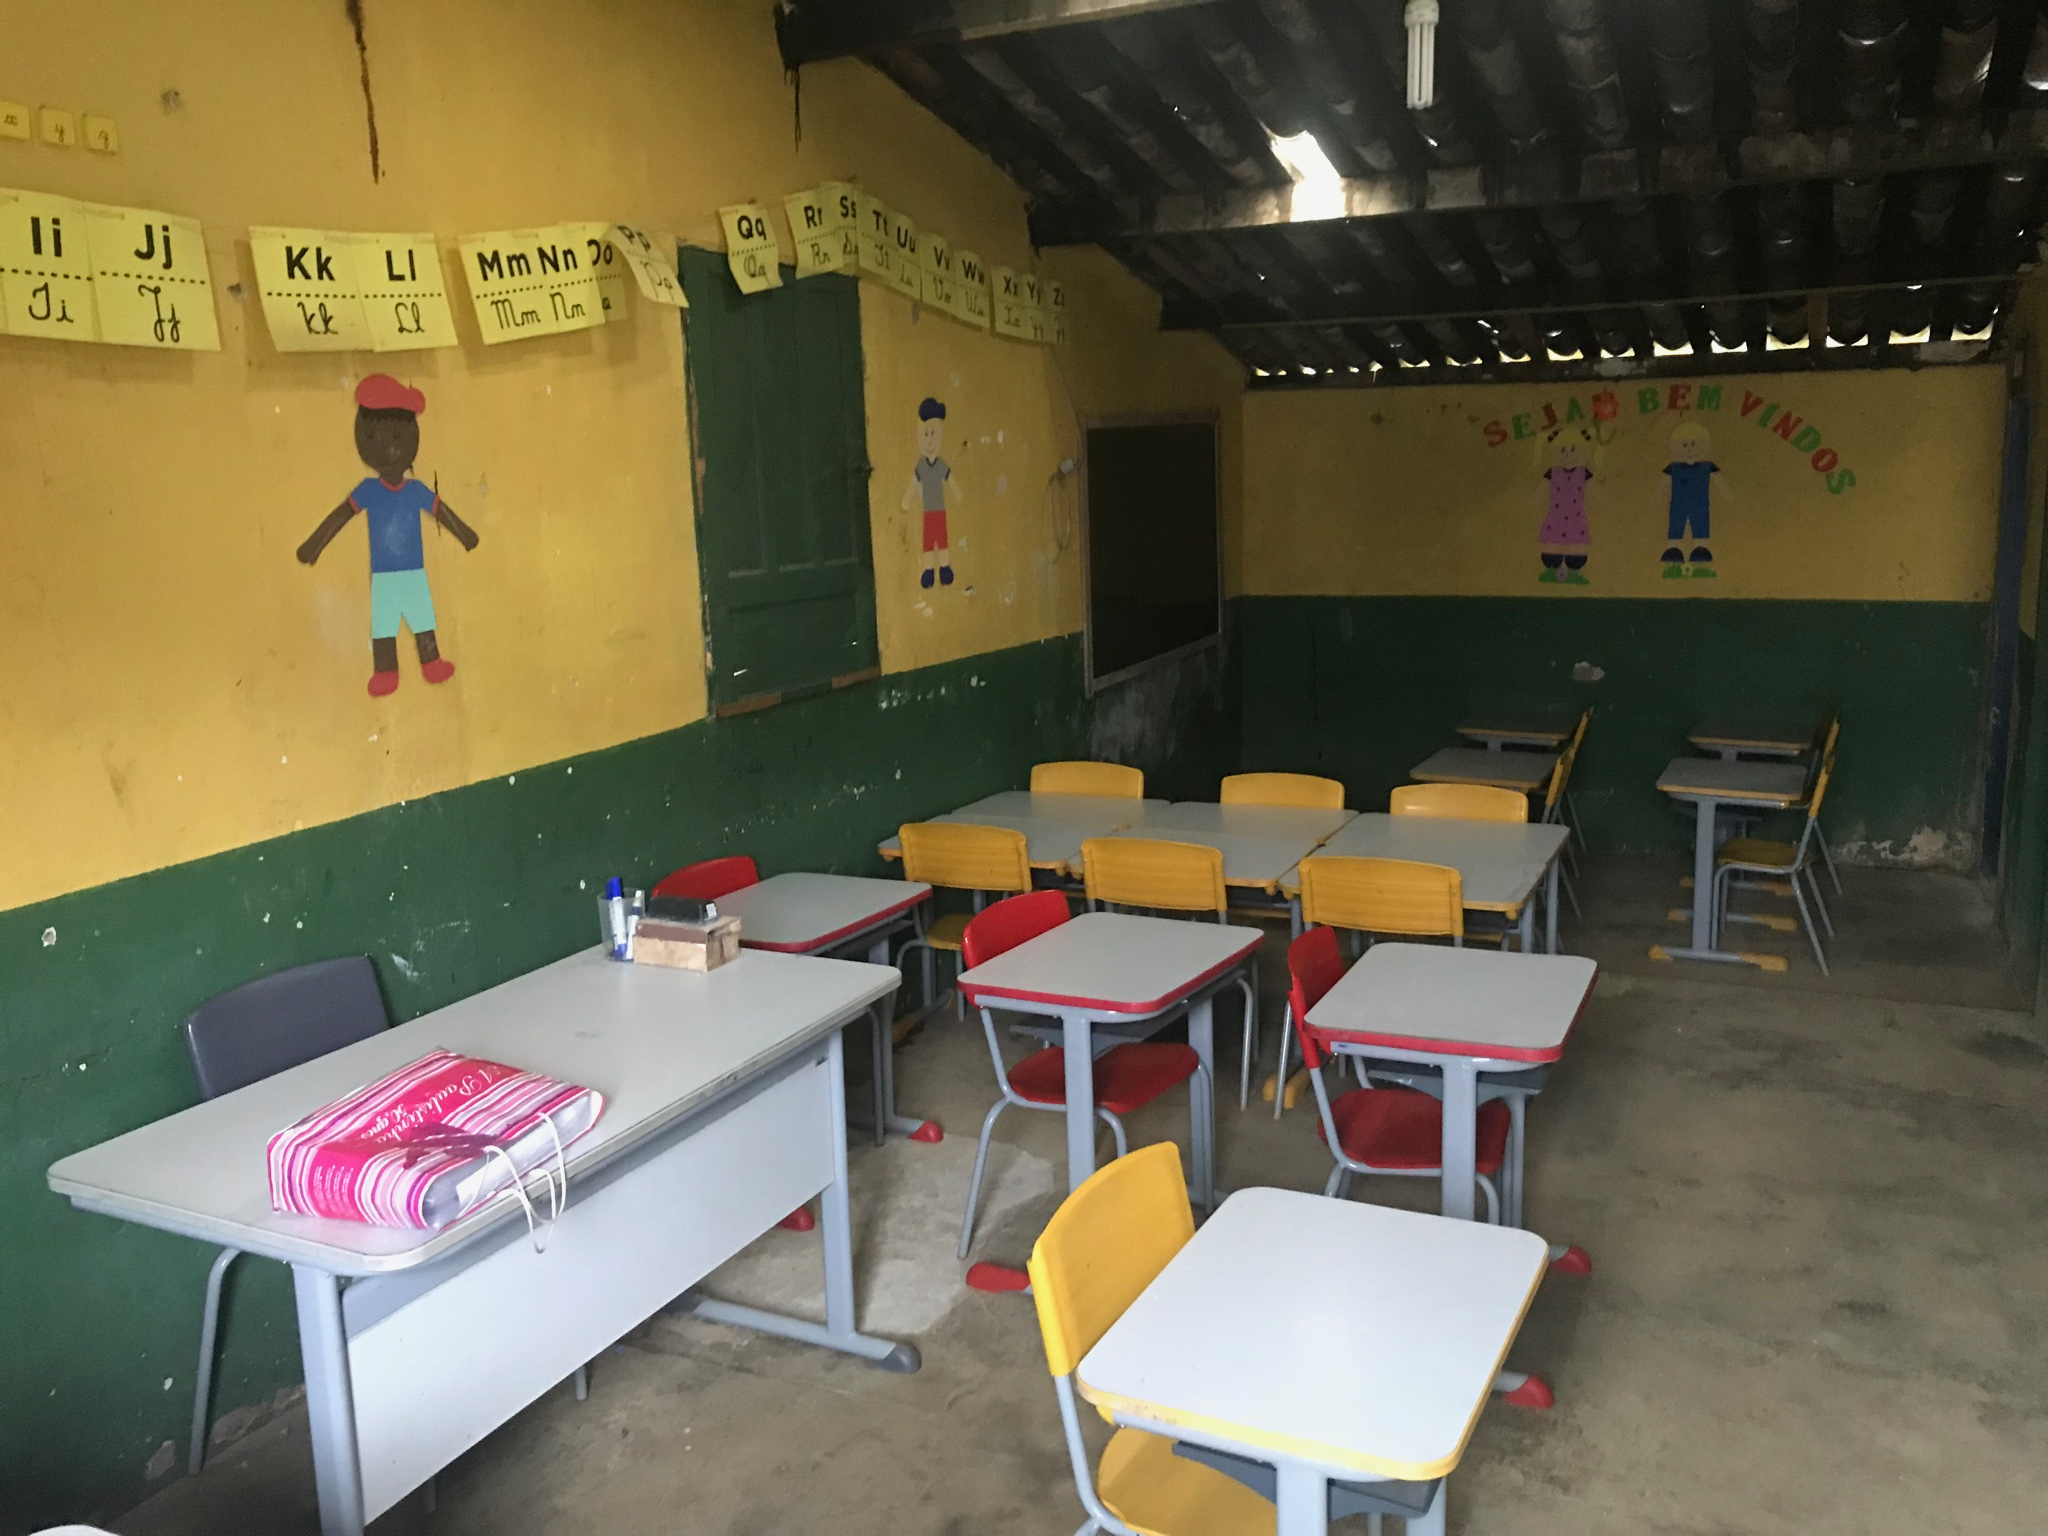 The schoolroom at Vale Potumuju, photo by Baiani Chocolate